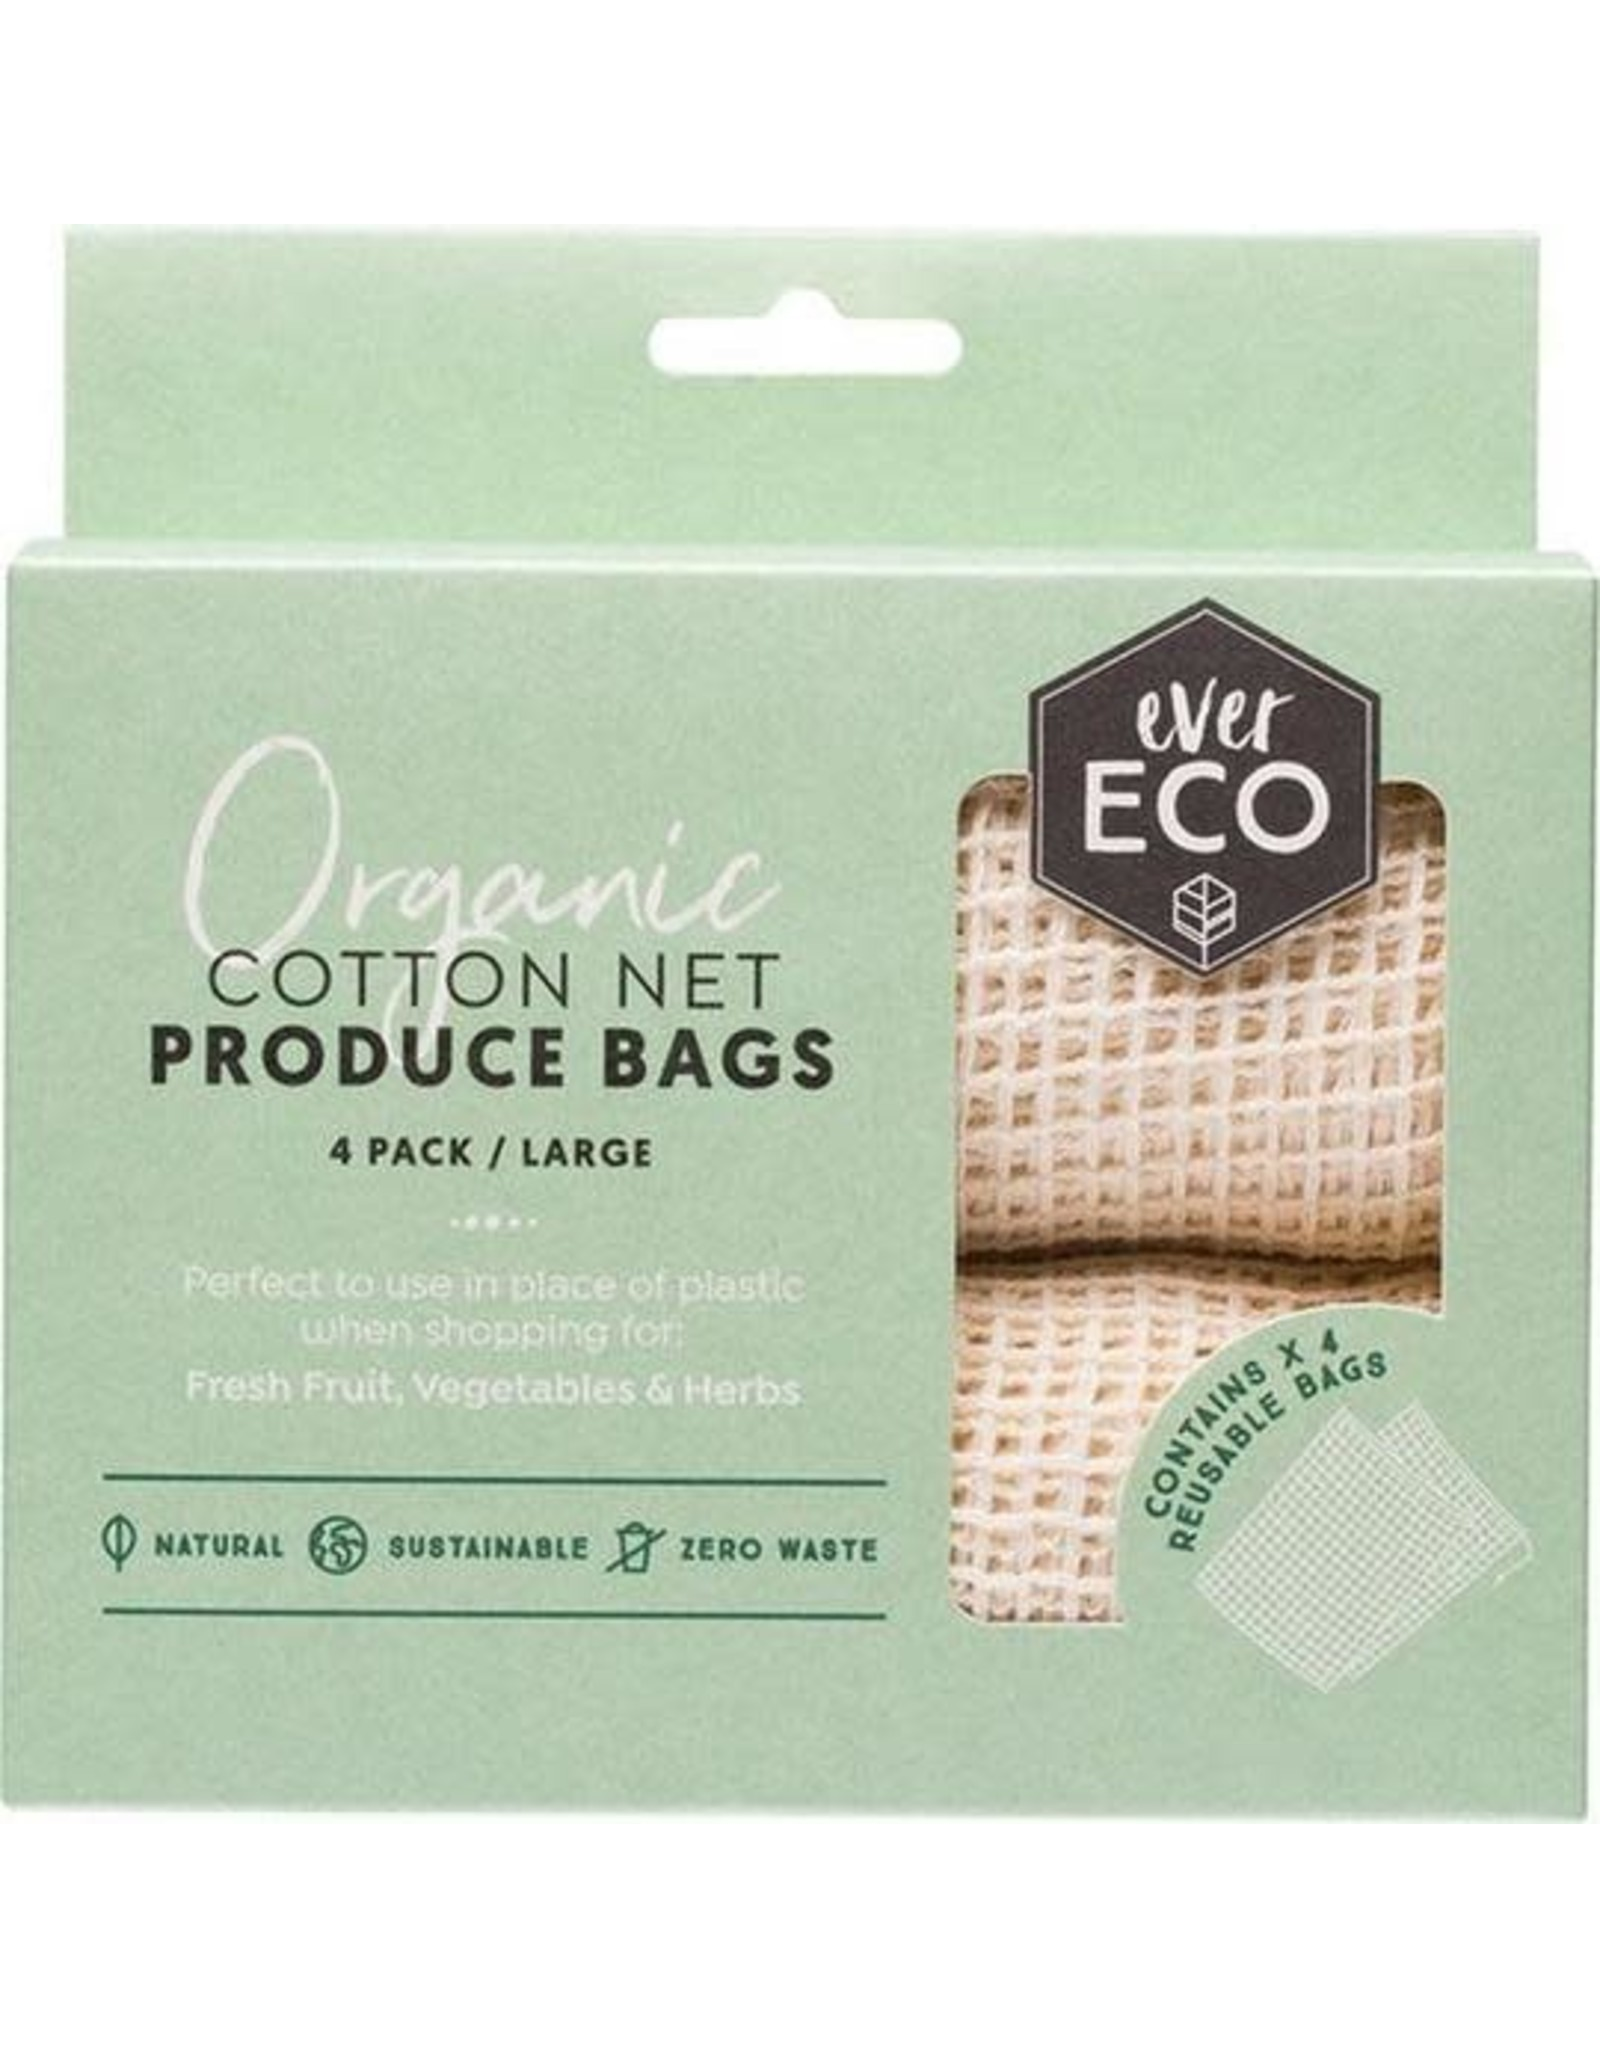 Ever Eco Reusable Produce Bags  Organic Cotton Net 4